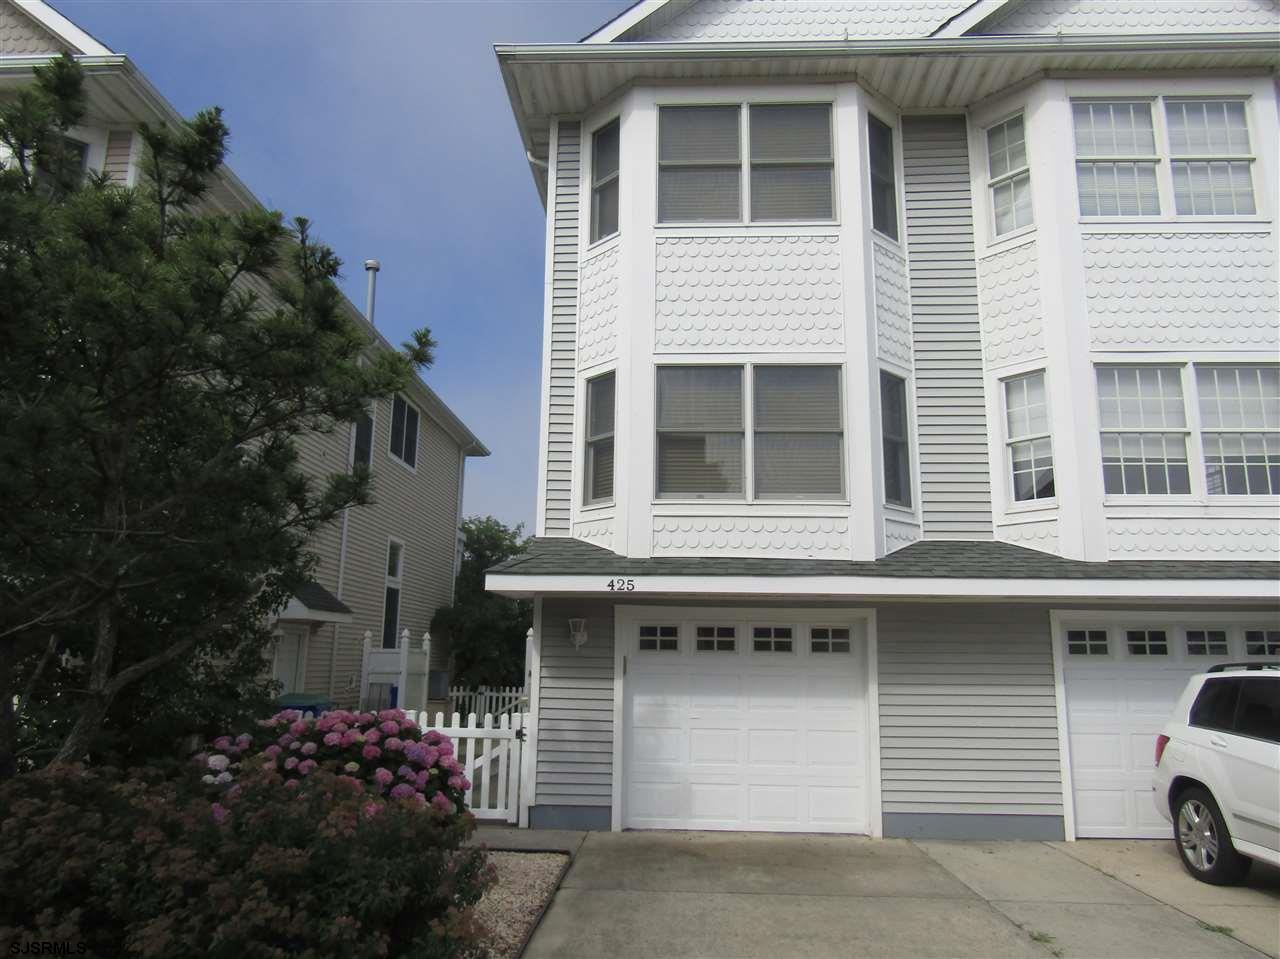 425 N New Hampshire Avenue - Picture 22